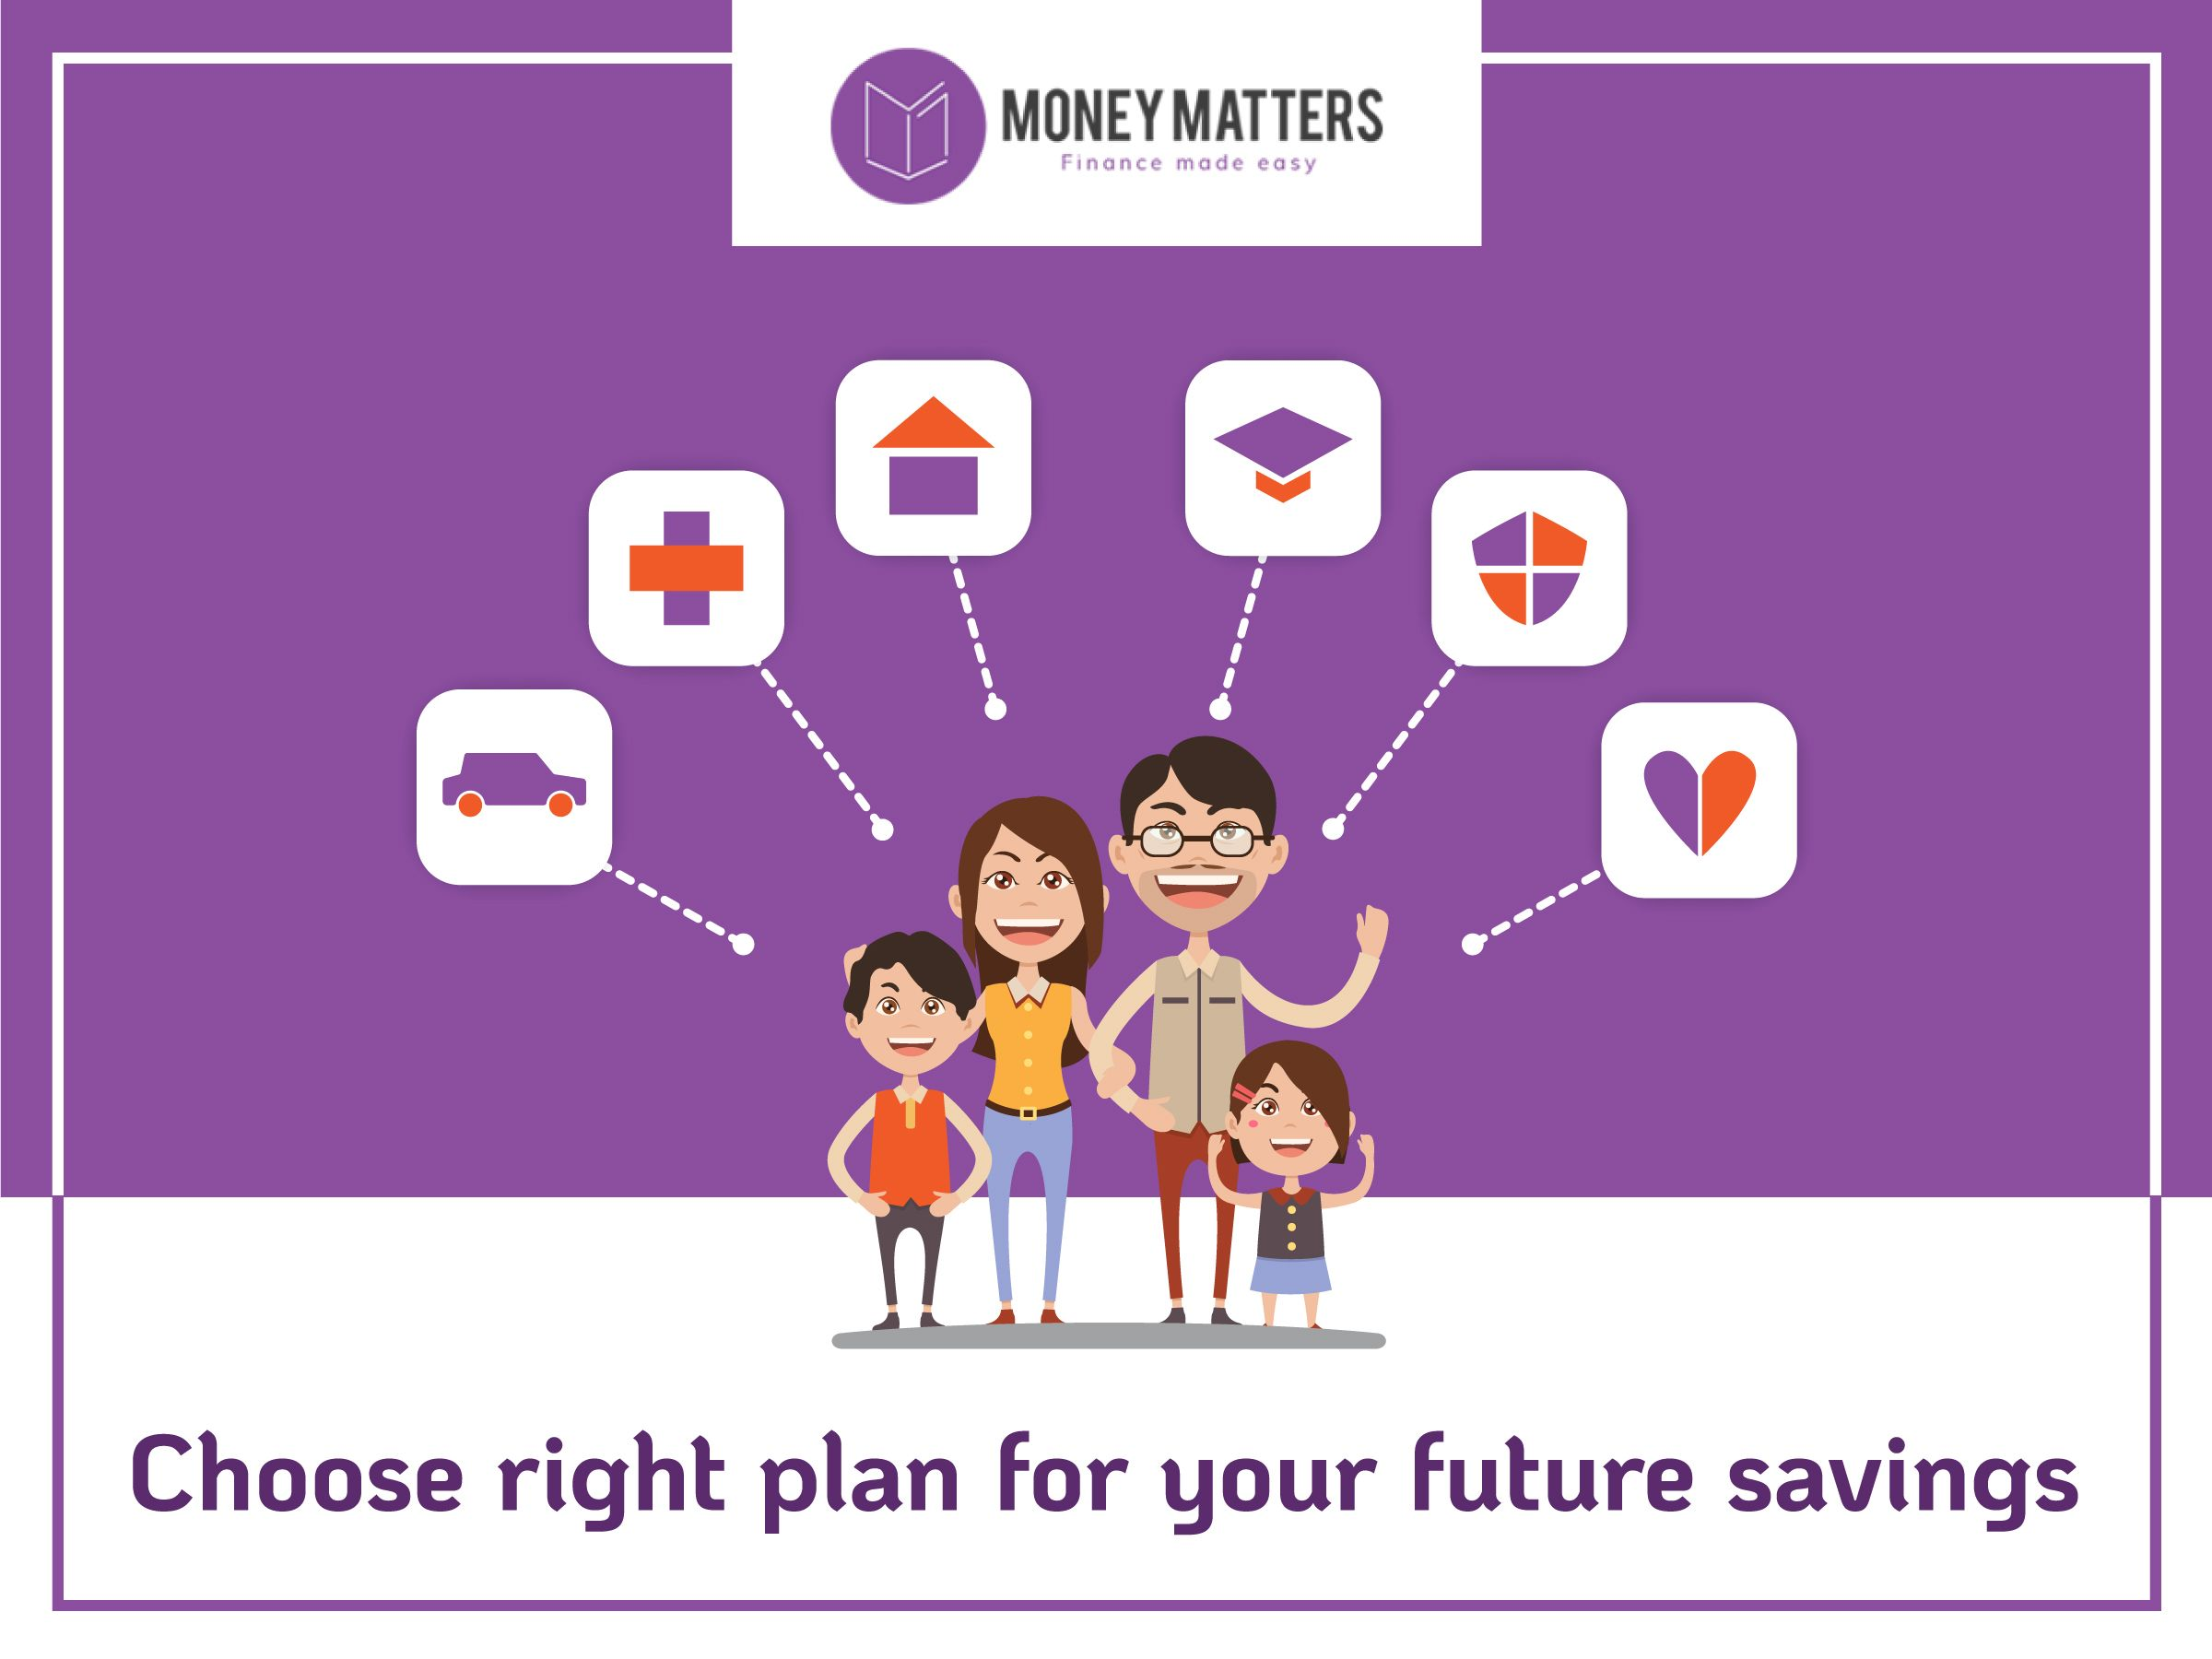 Choose right plan for your future savings money matters